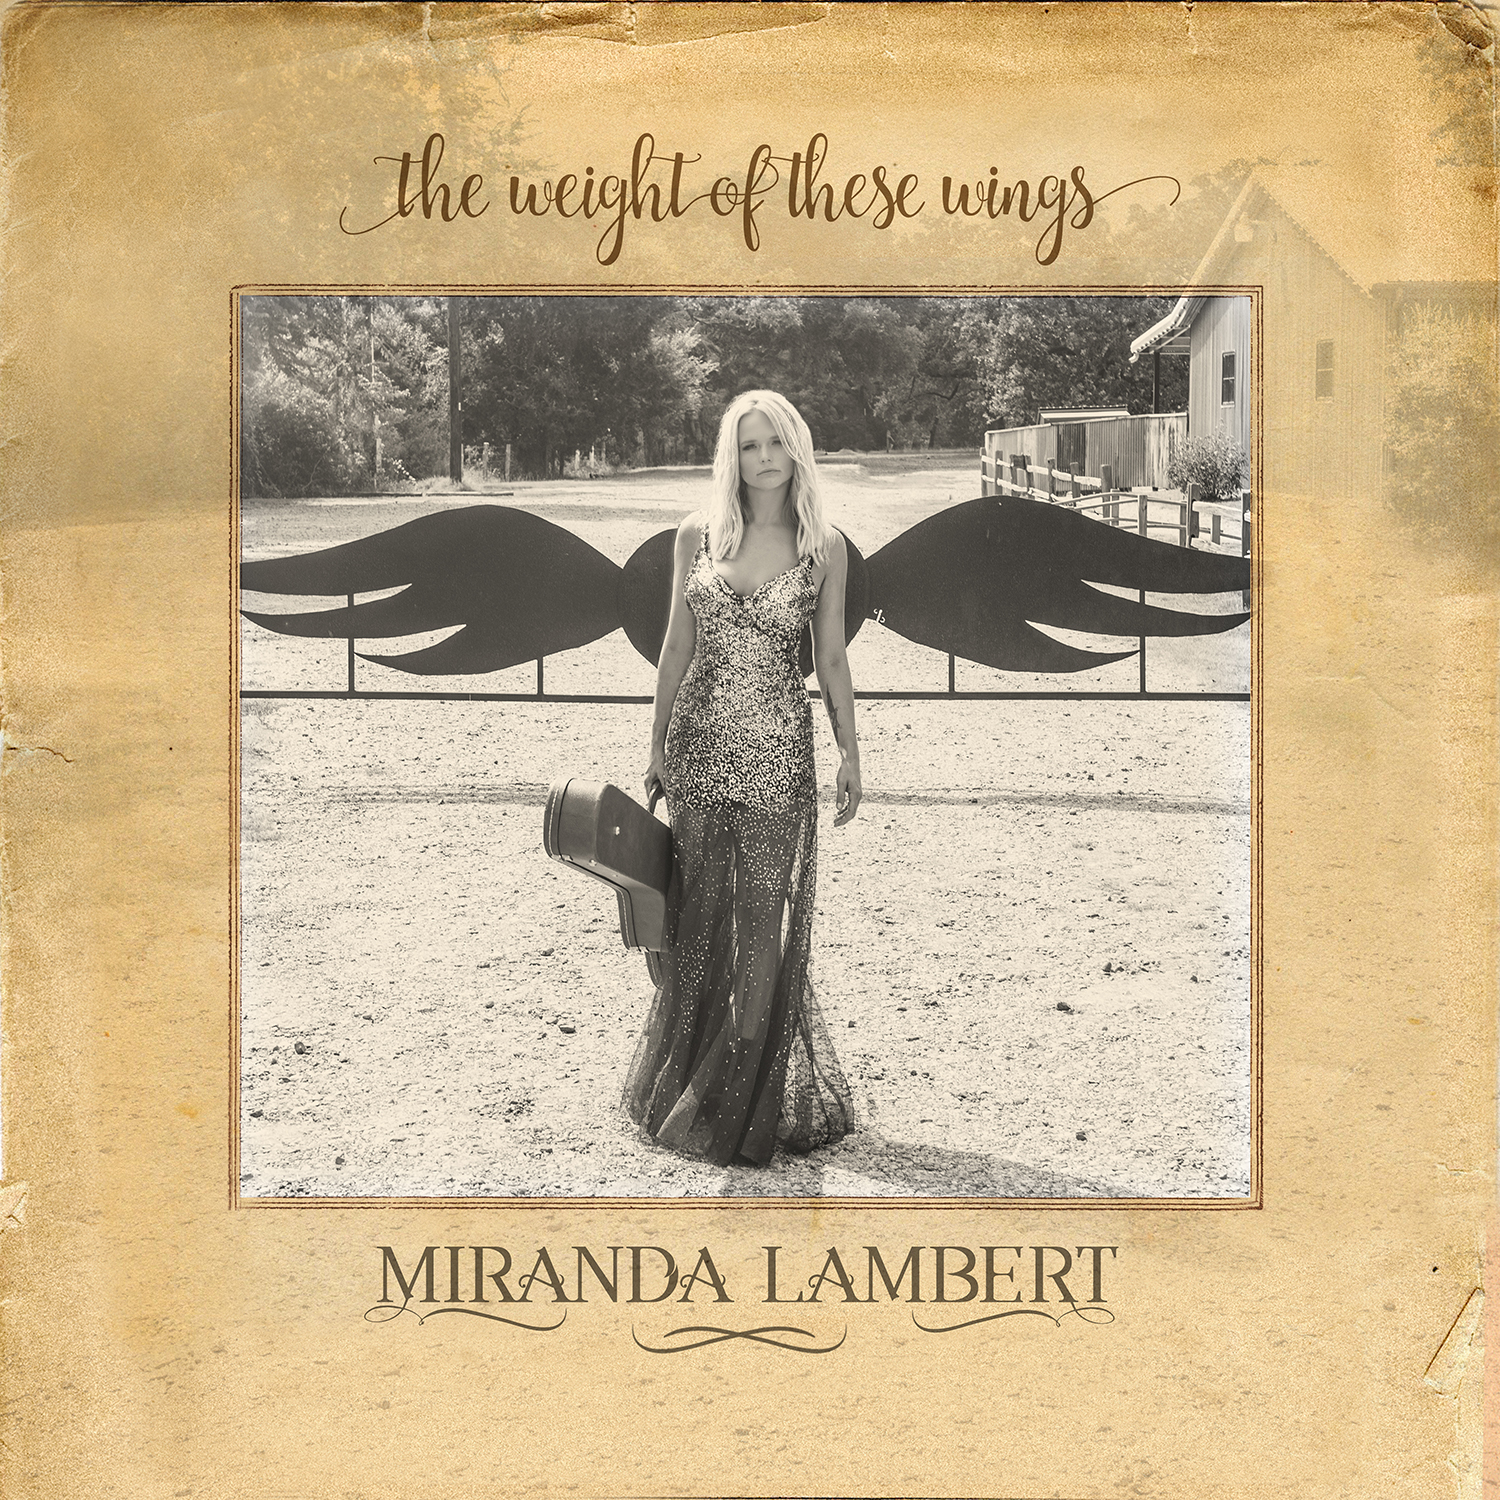 Bildresultat för miranda lambert the weight of these wings